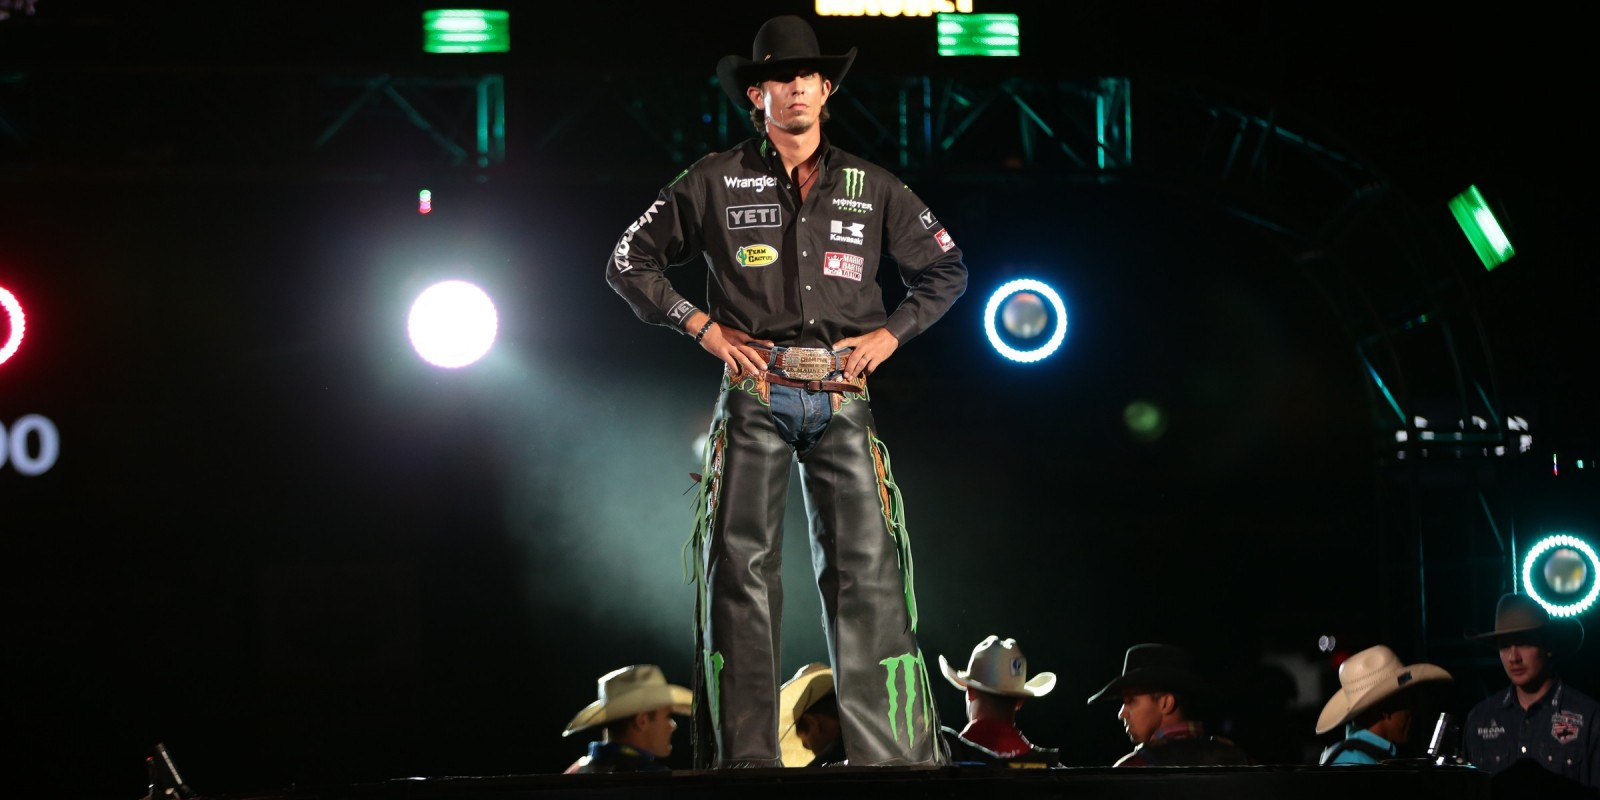 JB Mauney at the opening of the first round of the Charlotte Built Ford Tough Series PBR in Charlotte, NC